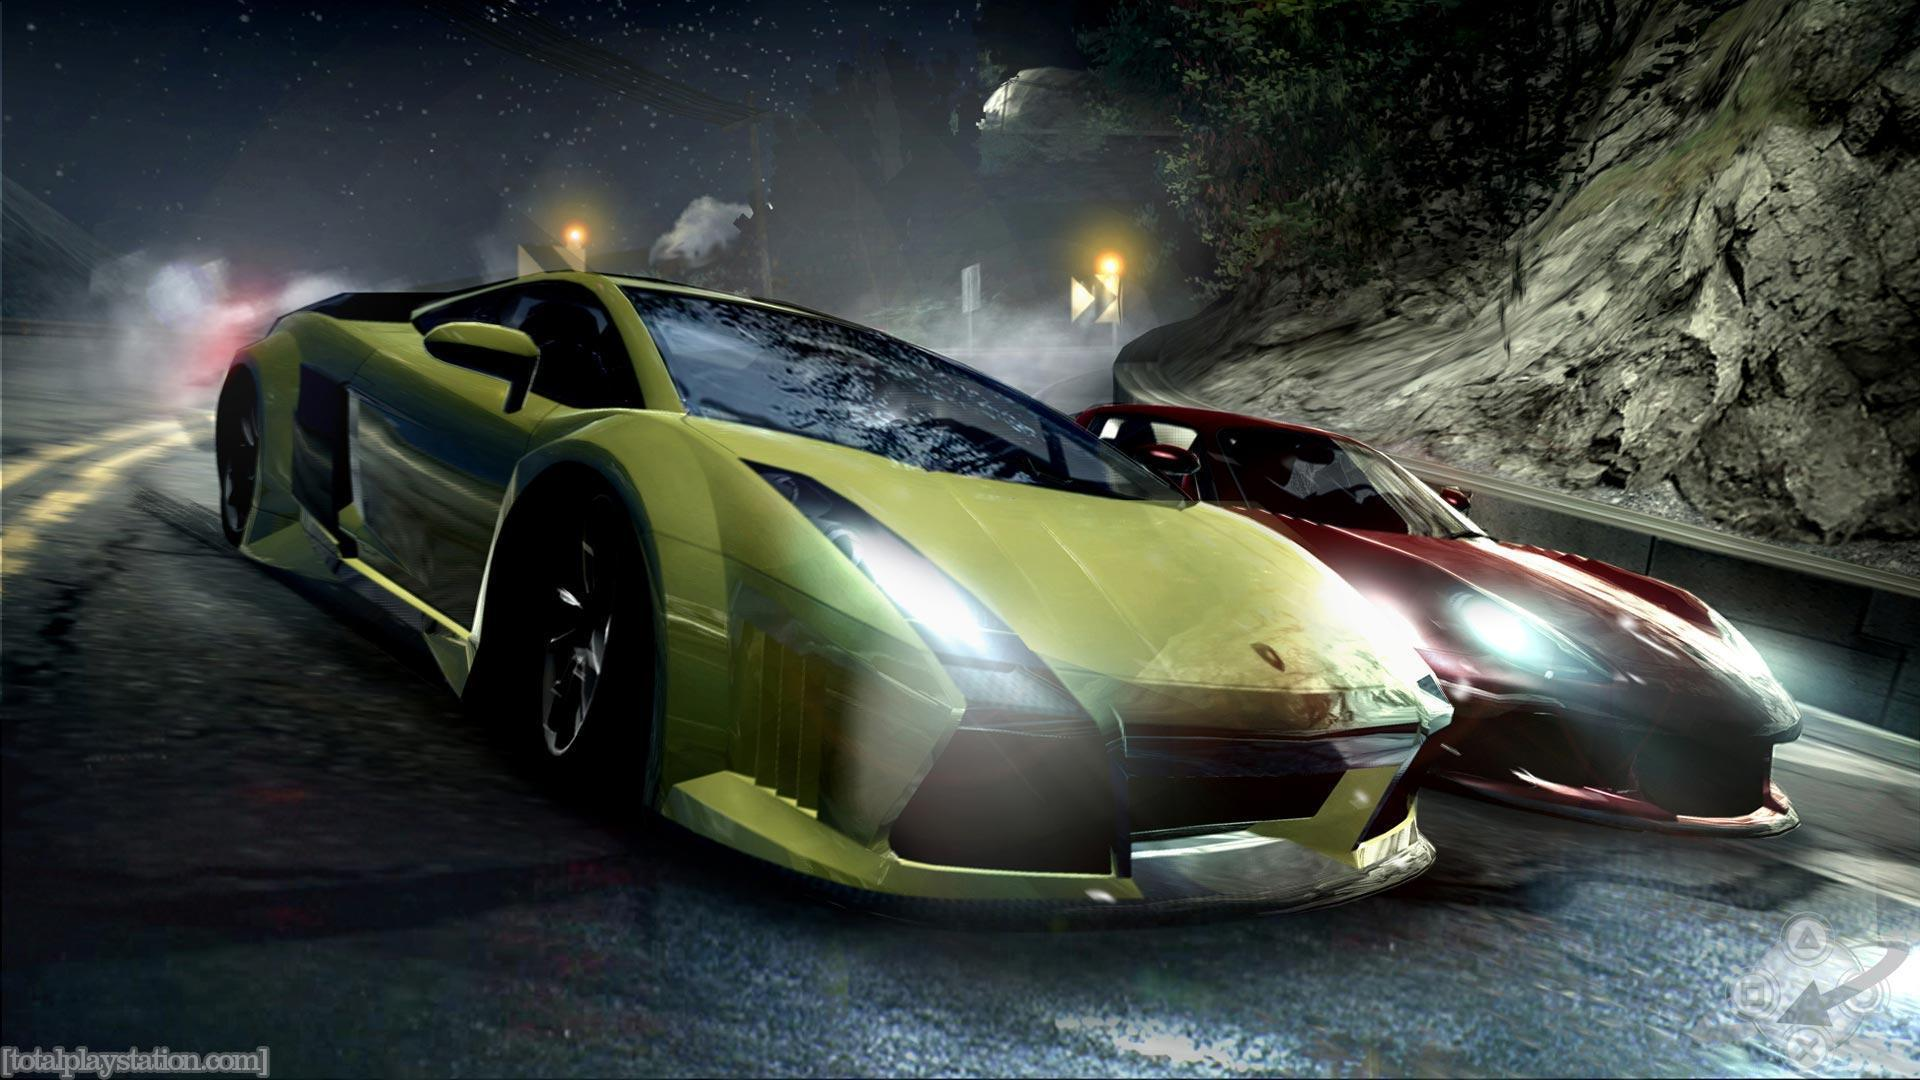 Need For Speed Wallpapers - Wallpaper Cave